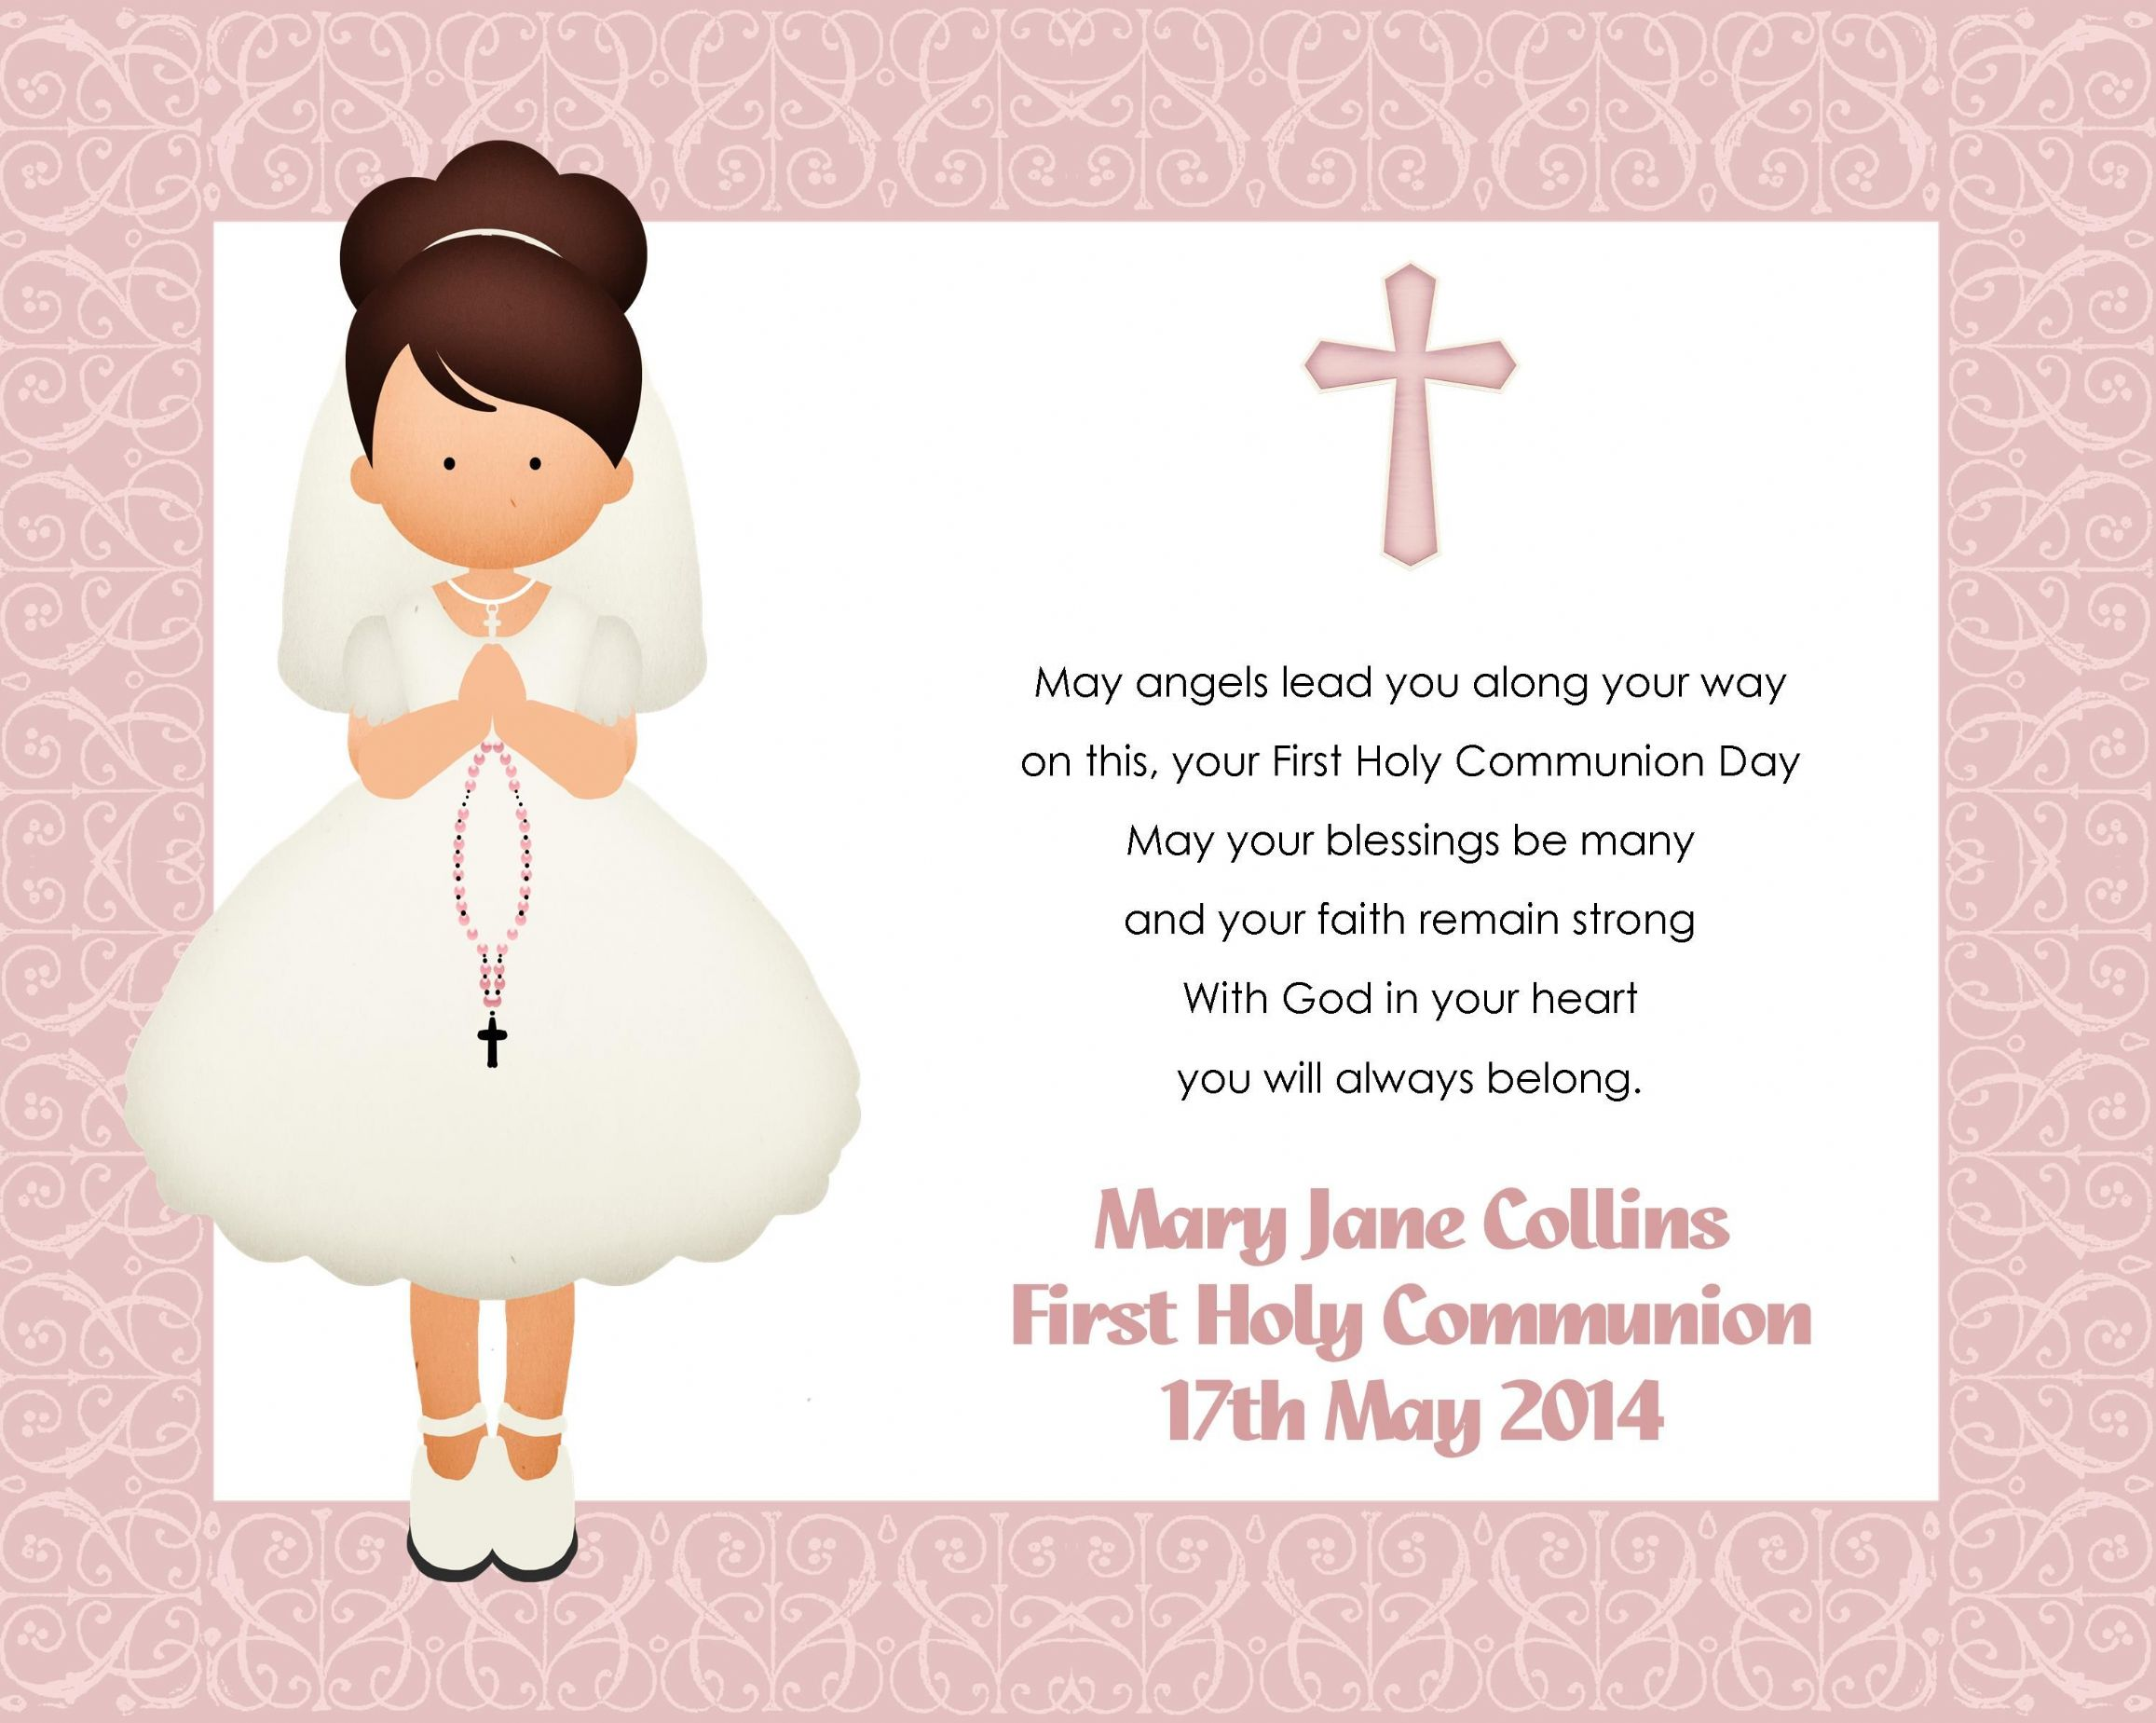 photograph relating to First Holy Communion Cards Printable Free named Personalized Gals To start with Holy Communion Print